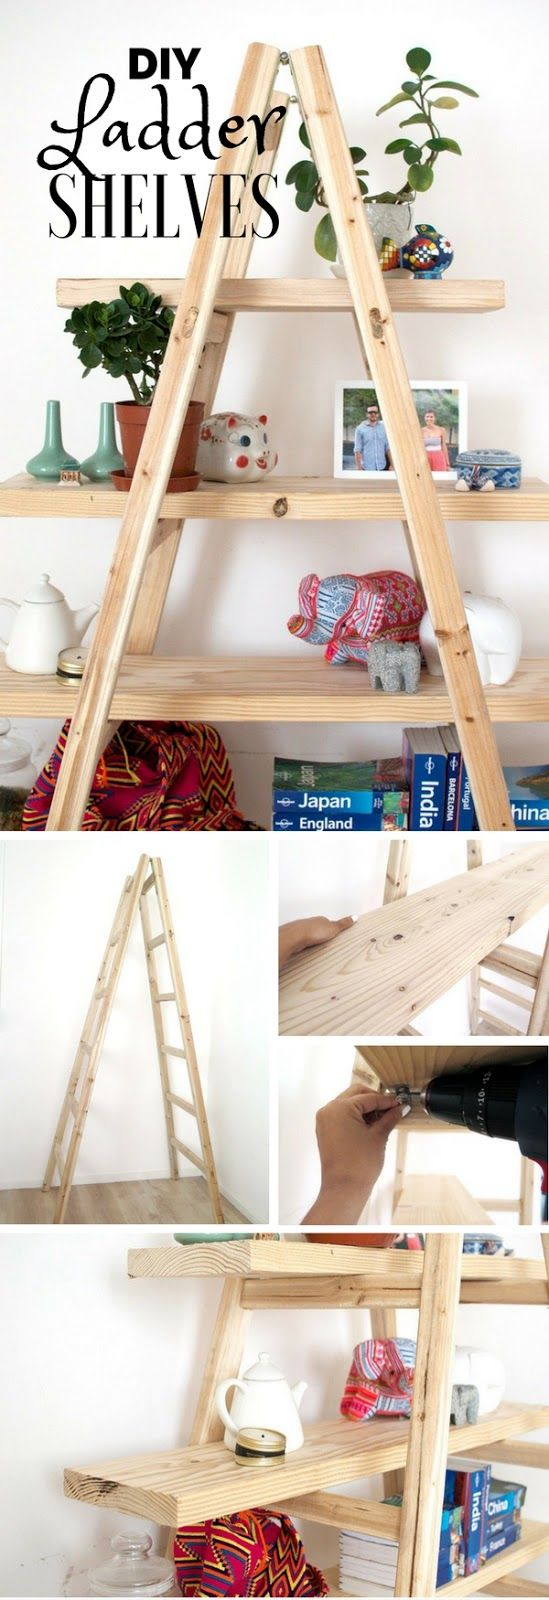 Really genius home hacks that you can do just like this gorgeous DIY Ladder Shelves